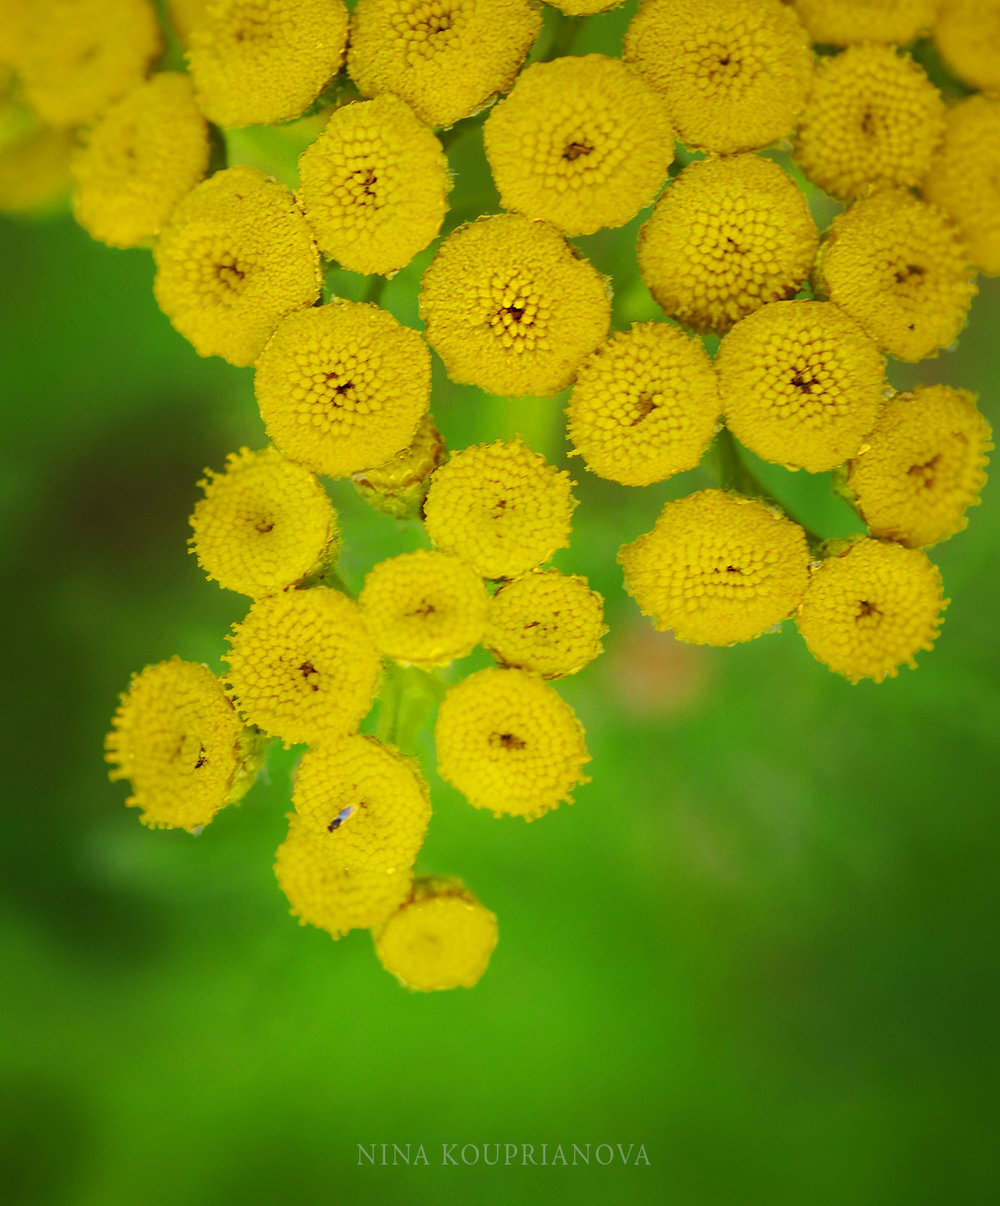 yellow and green sq 1500 px.jpg